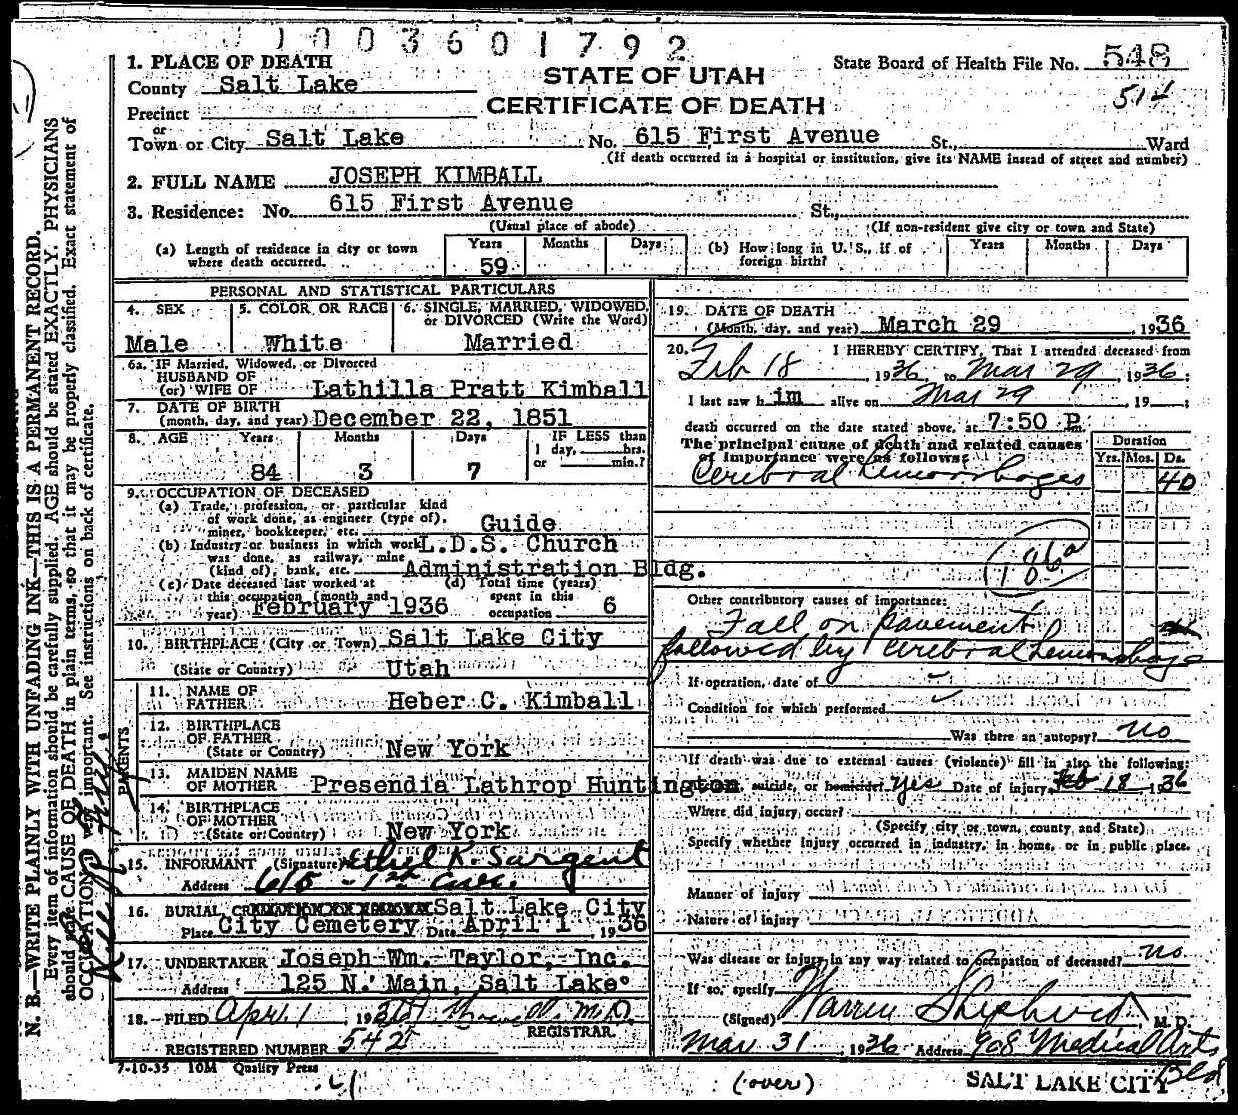 death certificate of joseph kimball